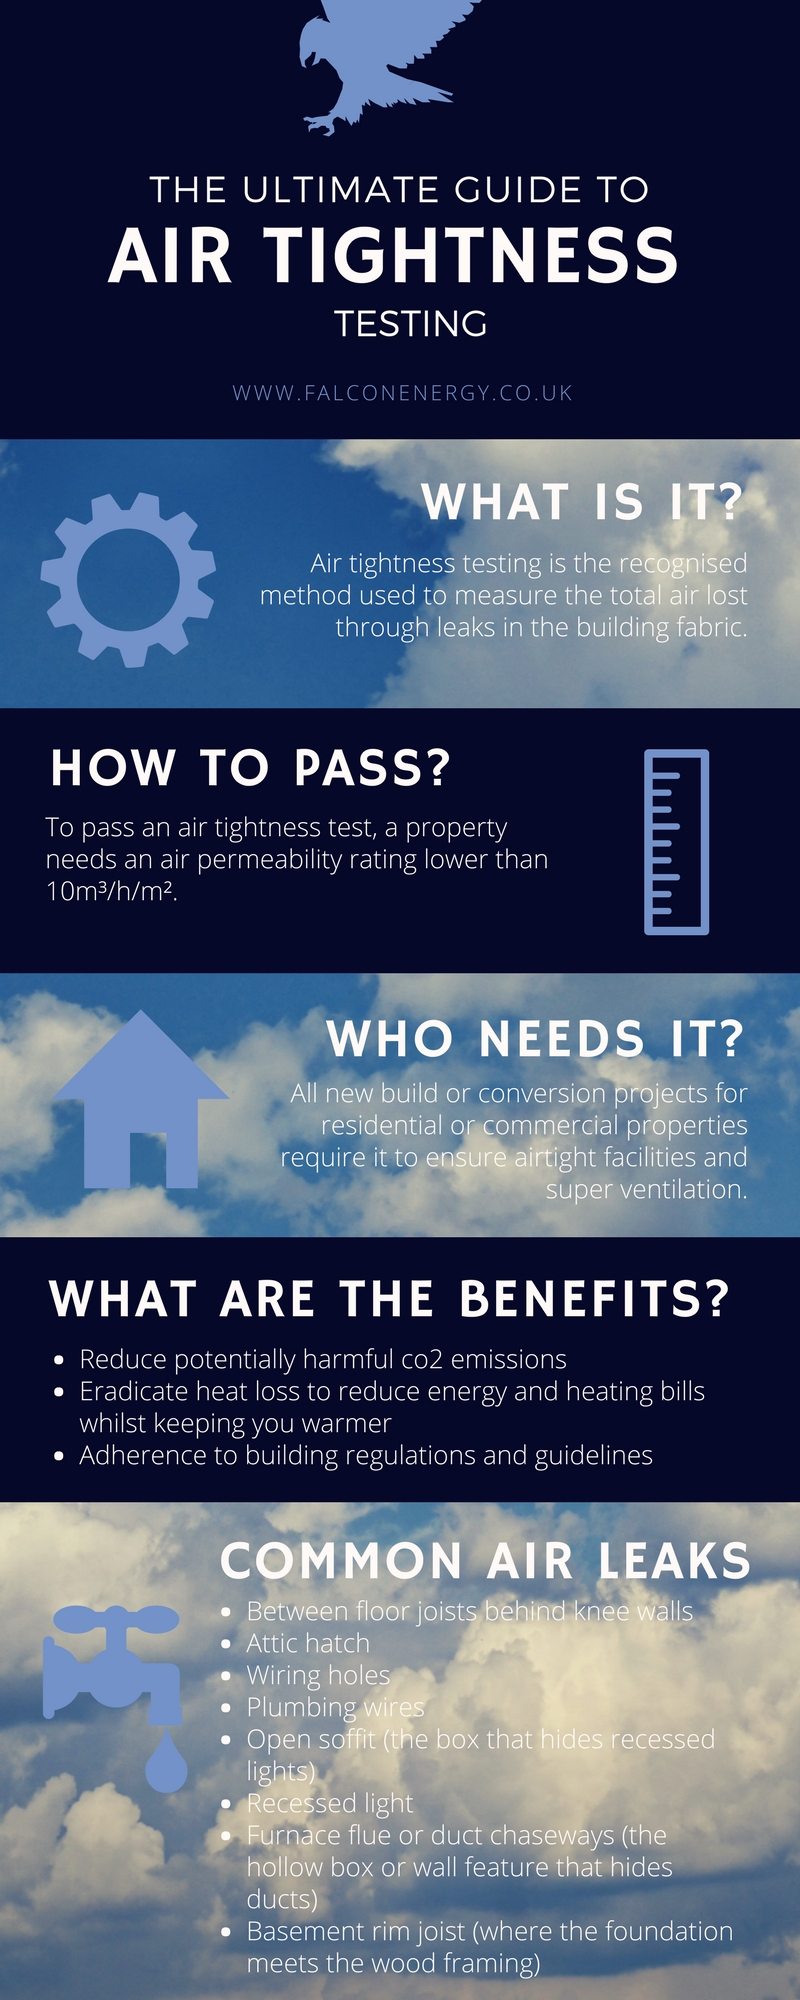 The Ultimate Guide to Air Tightness Testing